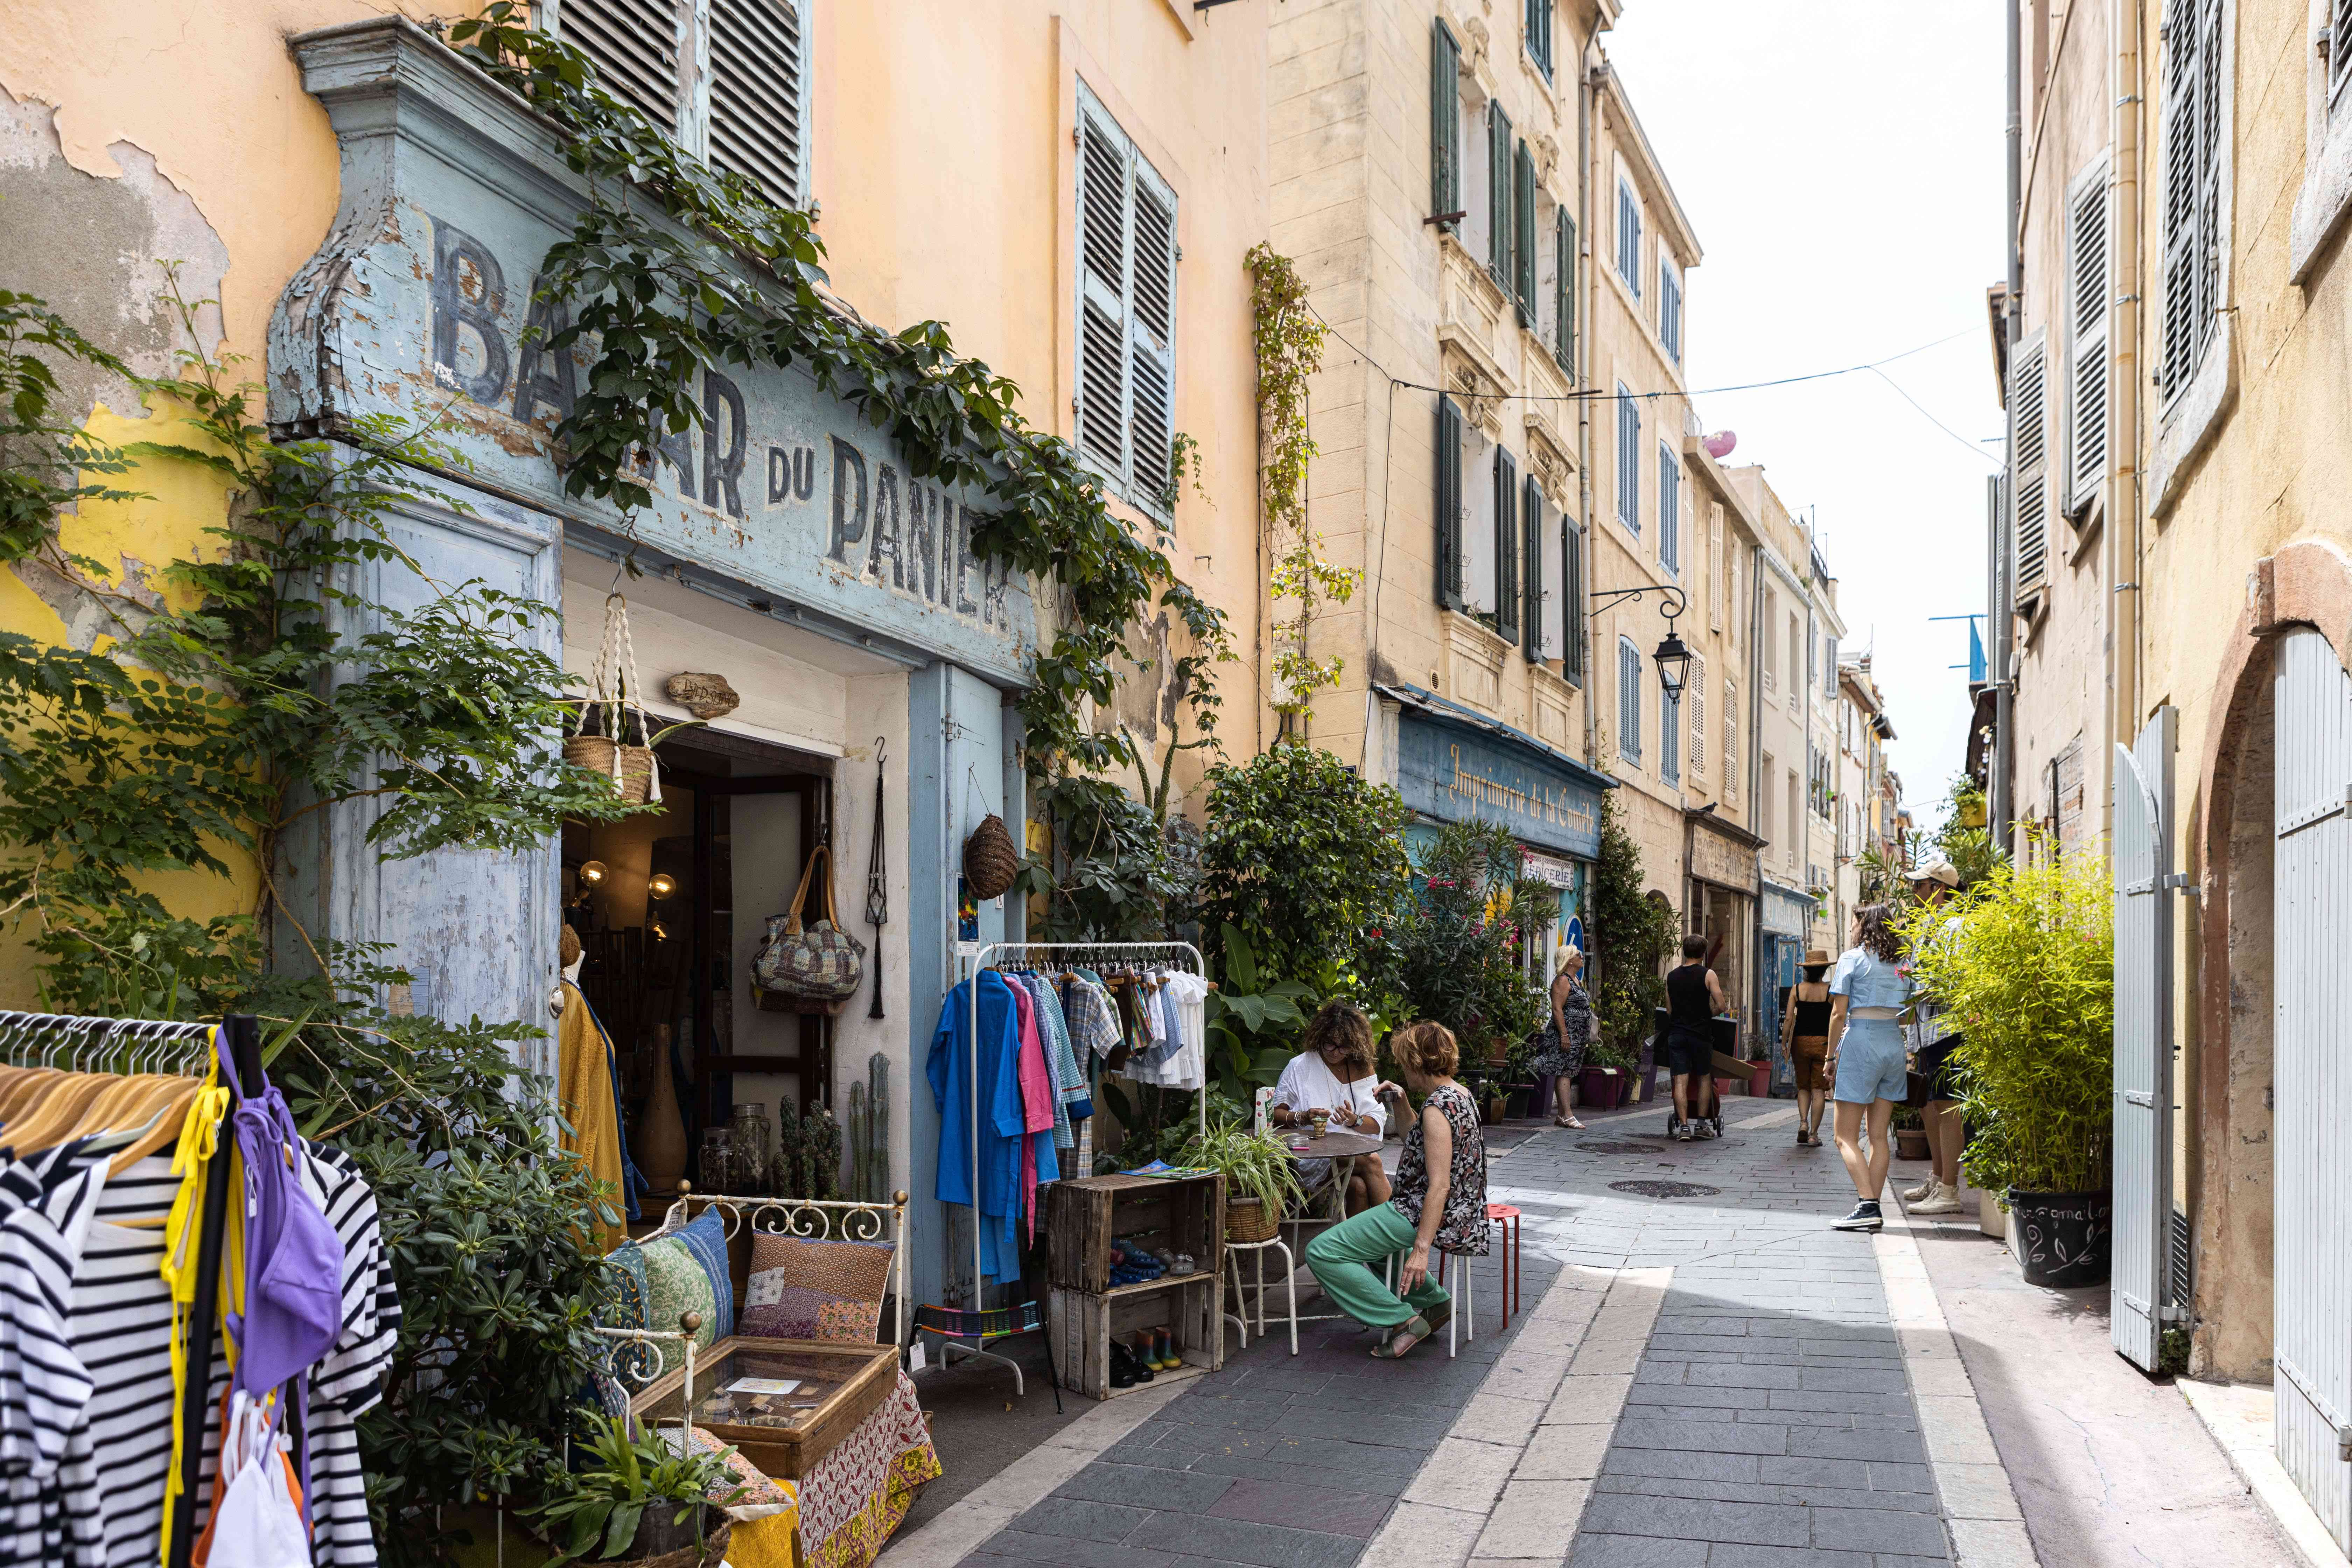 A street cafe and street shops in Marseille